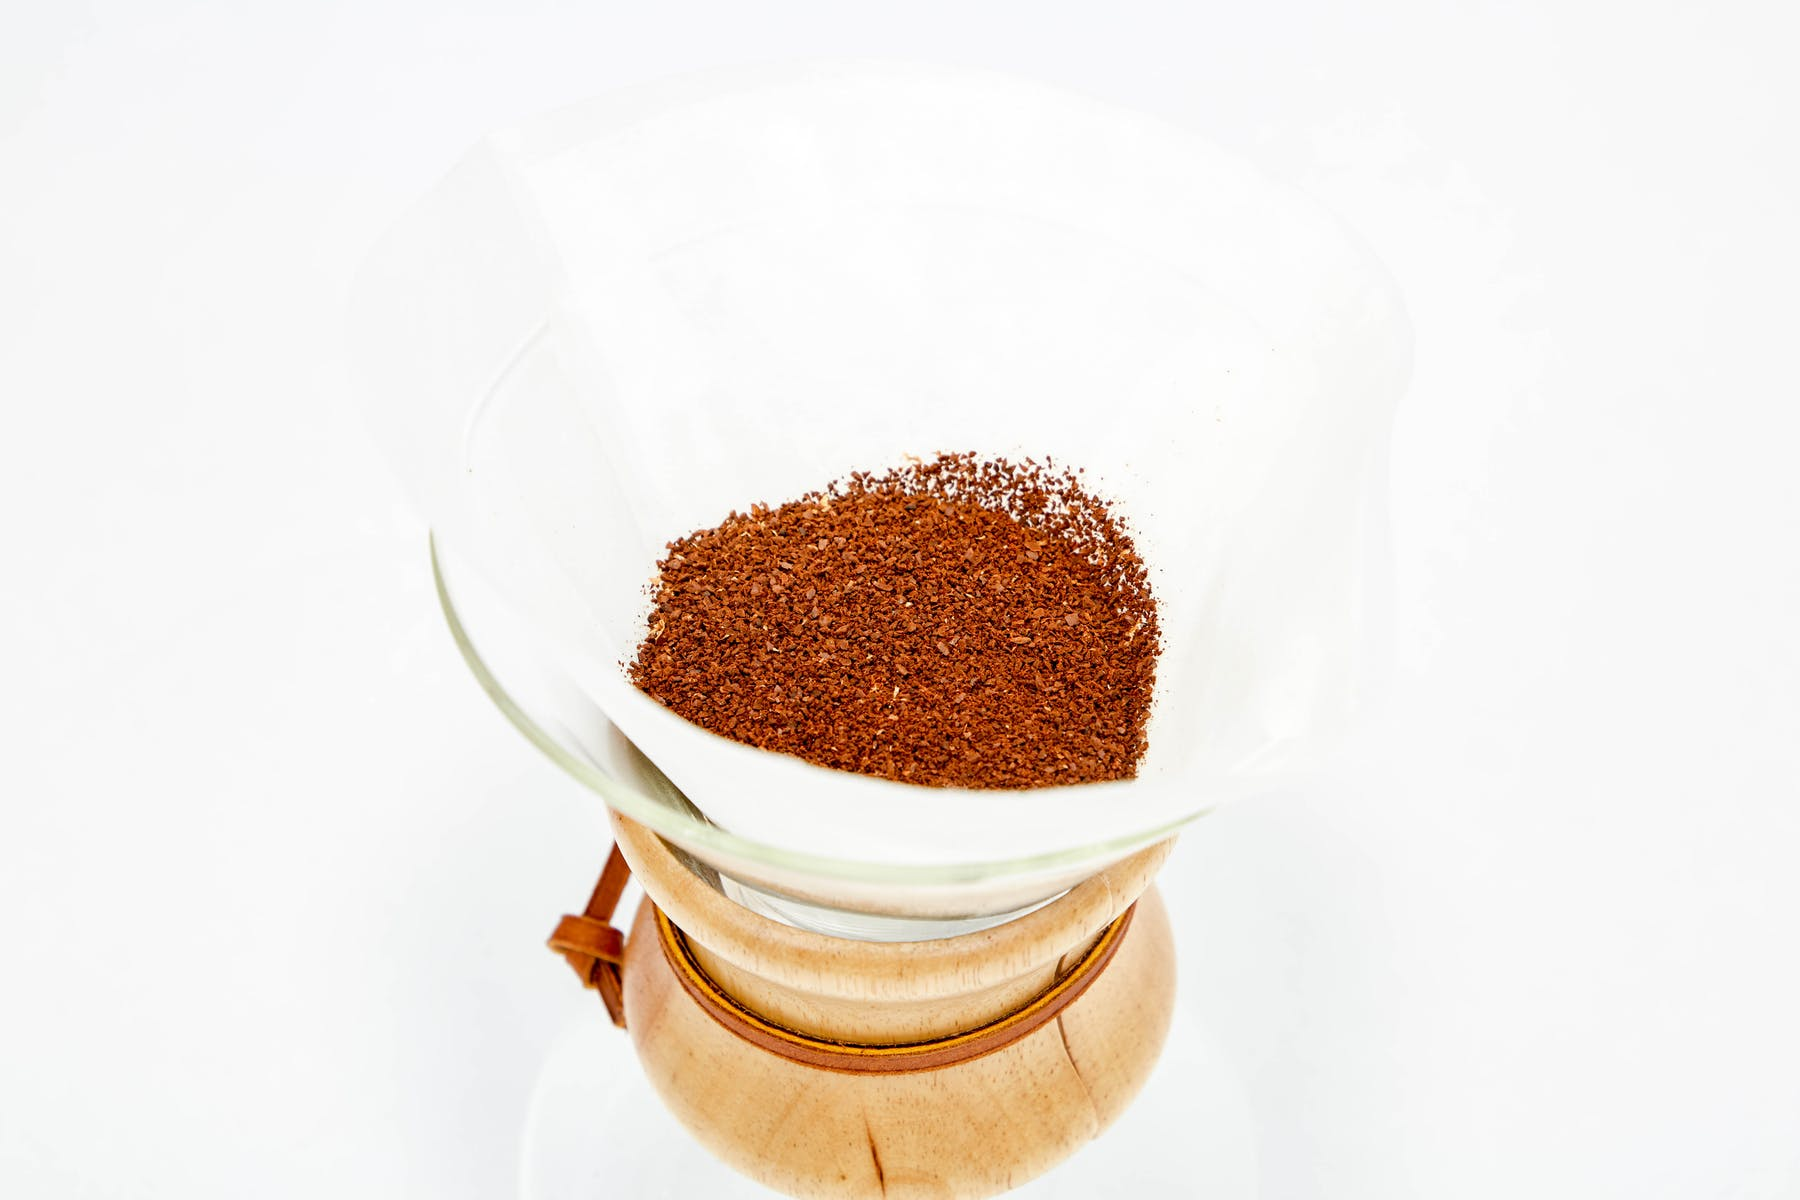 Put the ground coffee in the filter